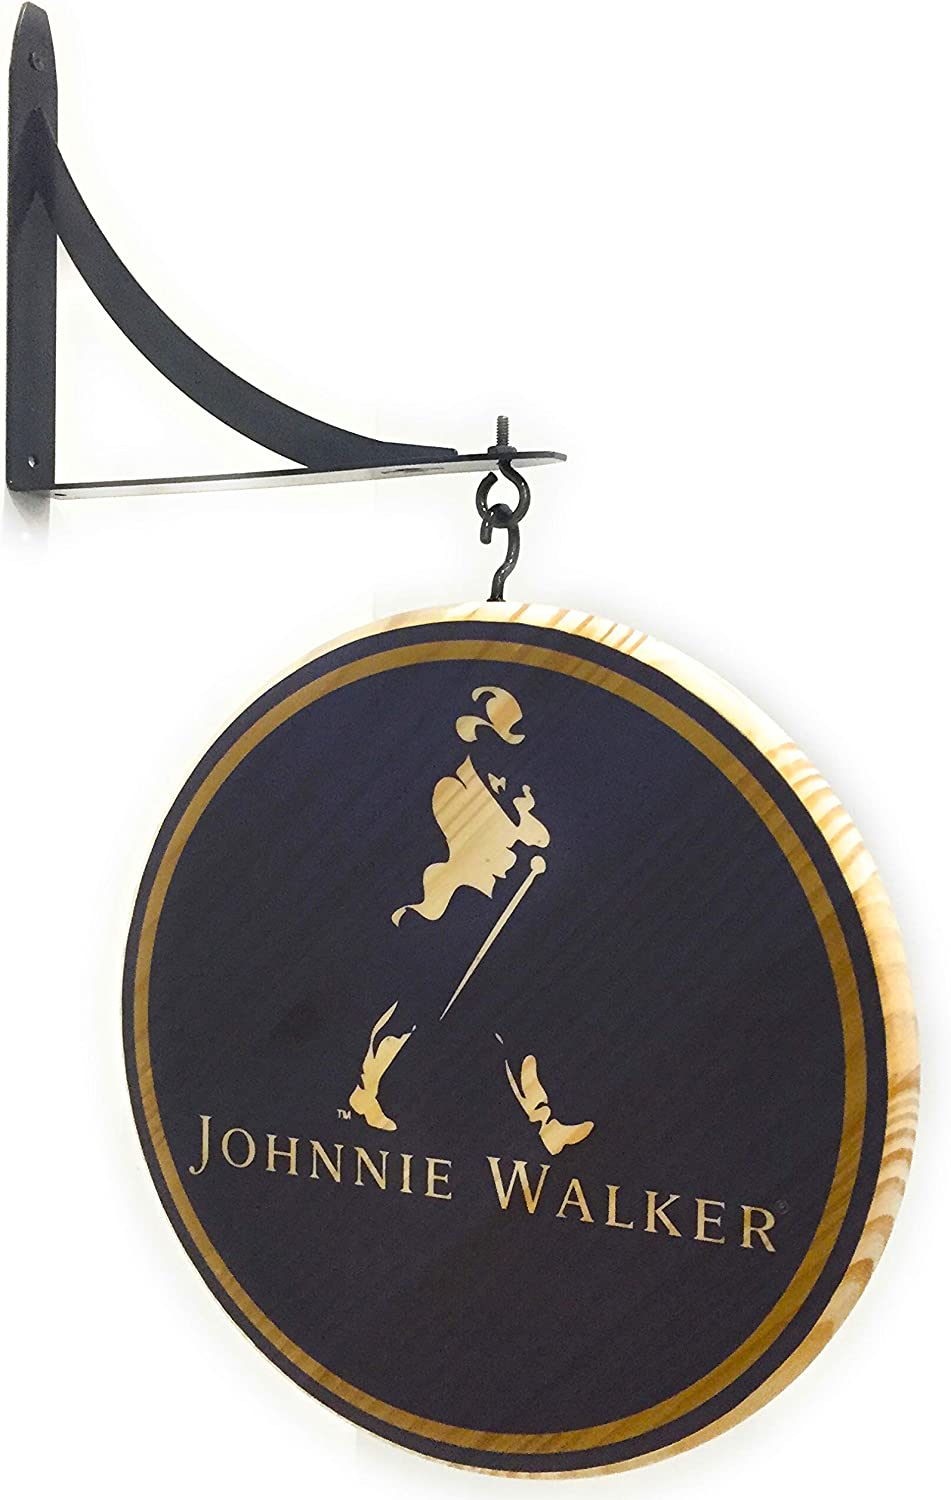 Johnnie Walker 12 Inch Double Sided Pub Sign